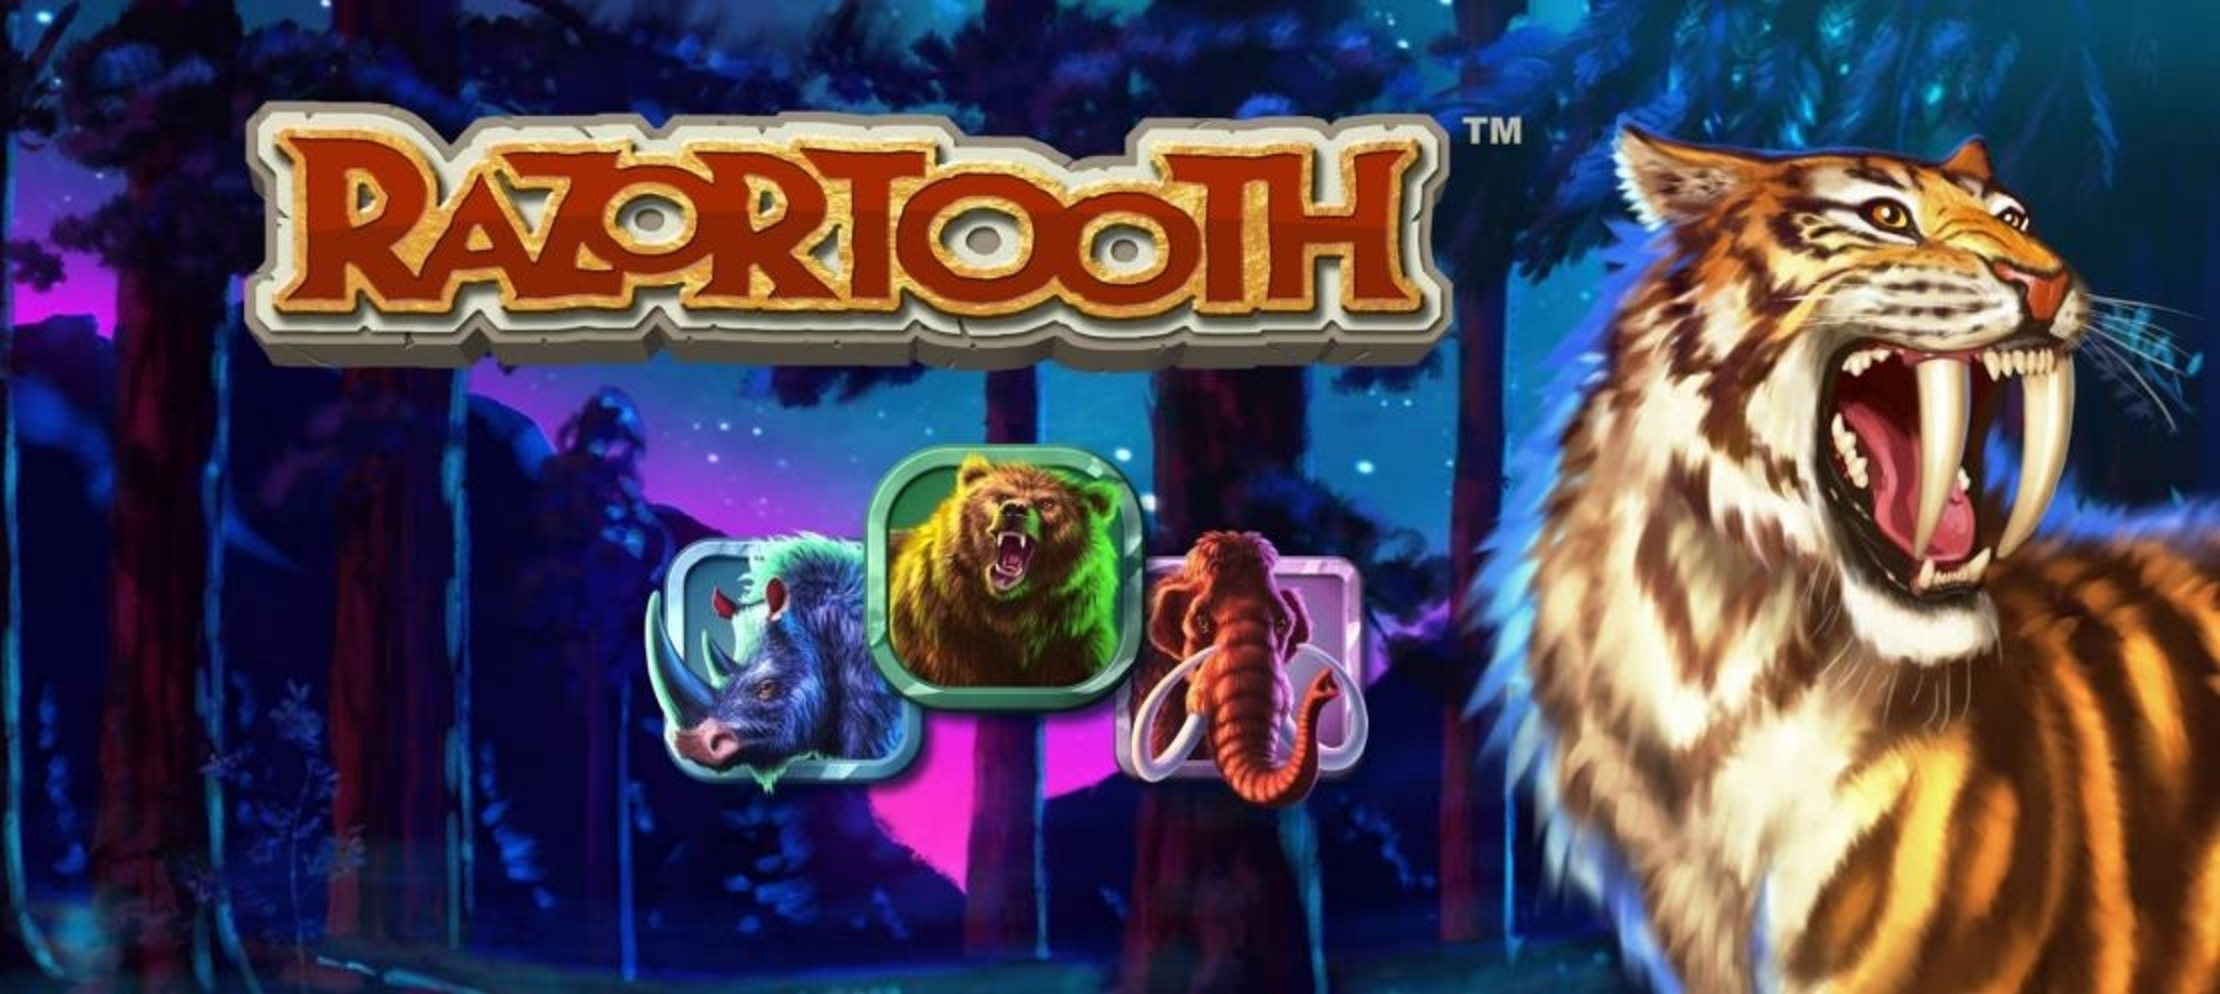 The Razortooth Online Slot Demo Game by Quickspin